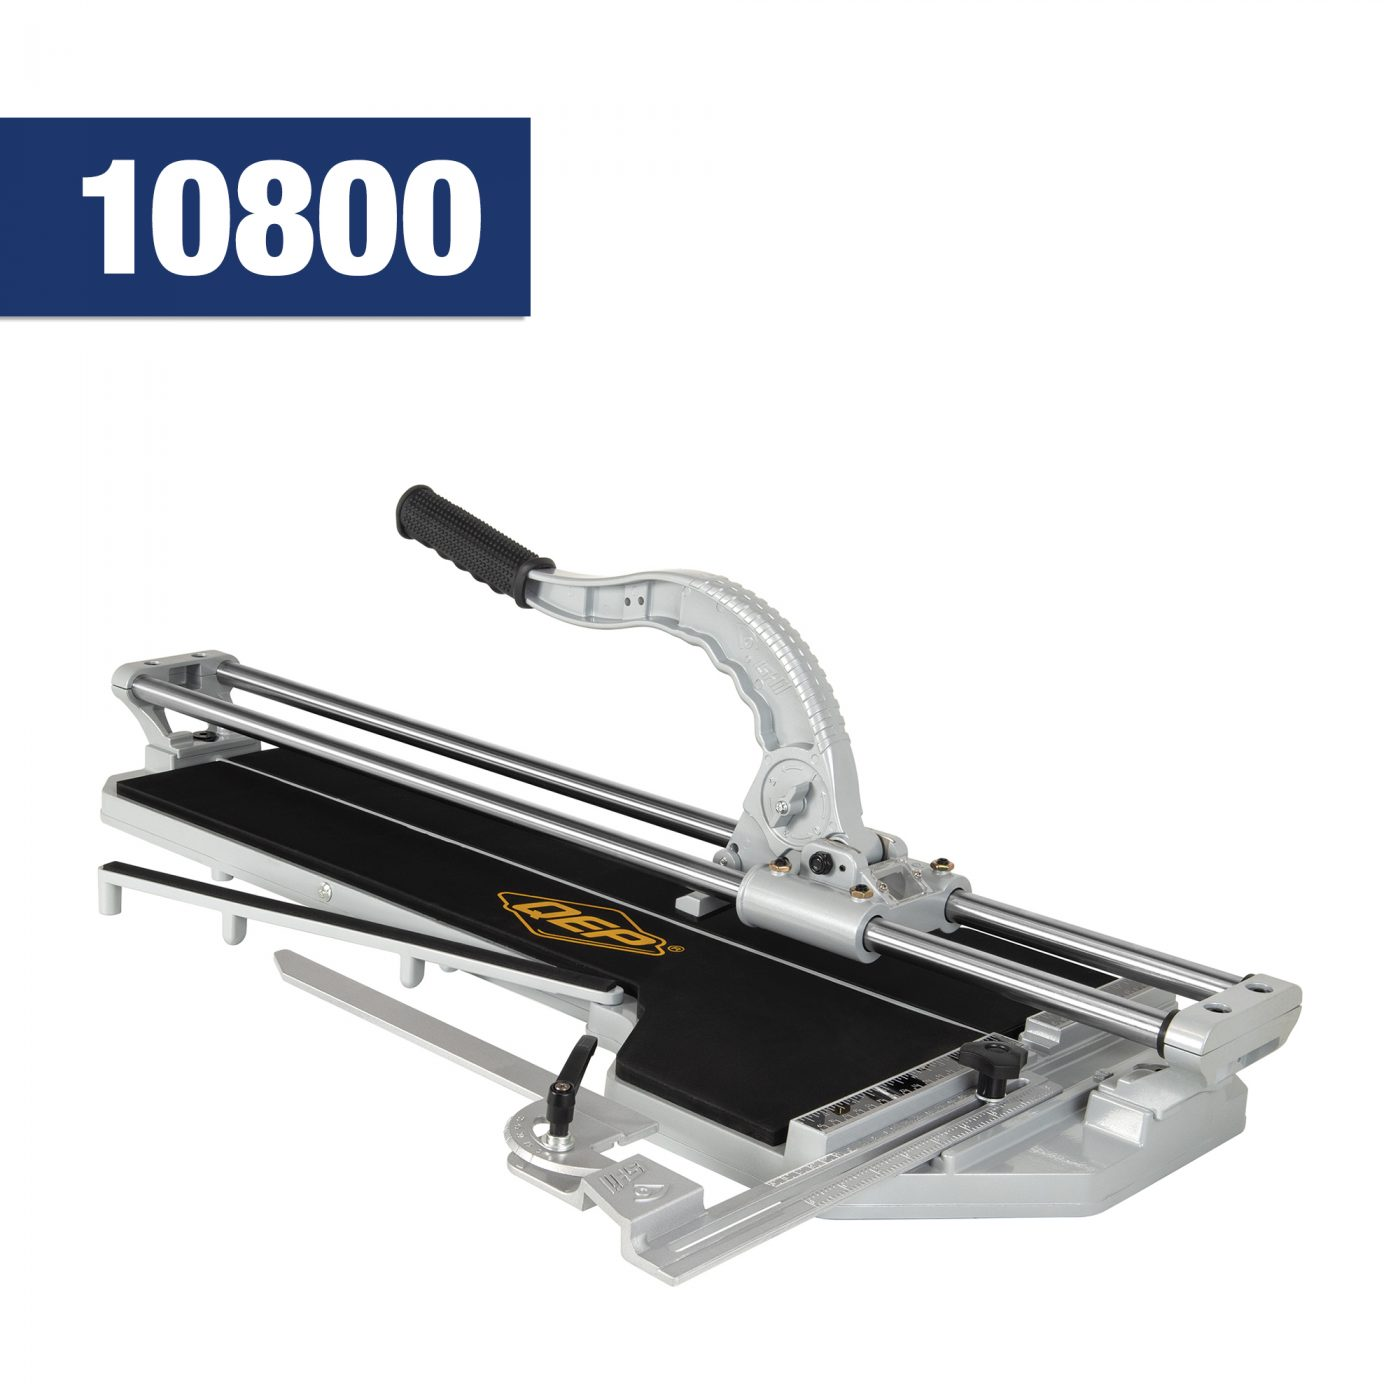 It has a 78 inch scoring wheel with titanium coating for accuracy. 27 Big Clinker Tile Cutter Qep